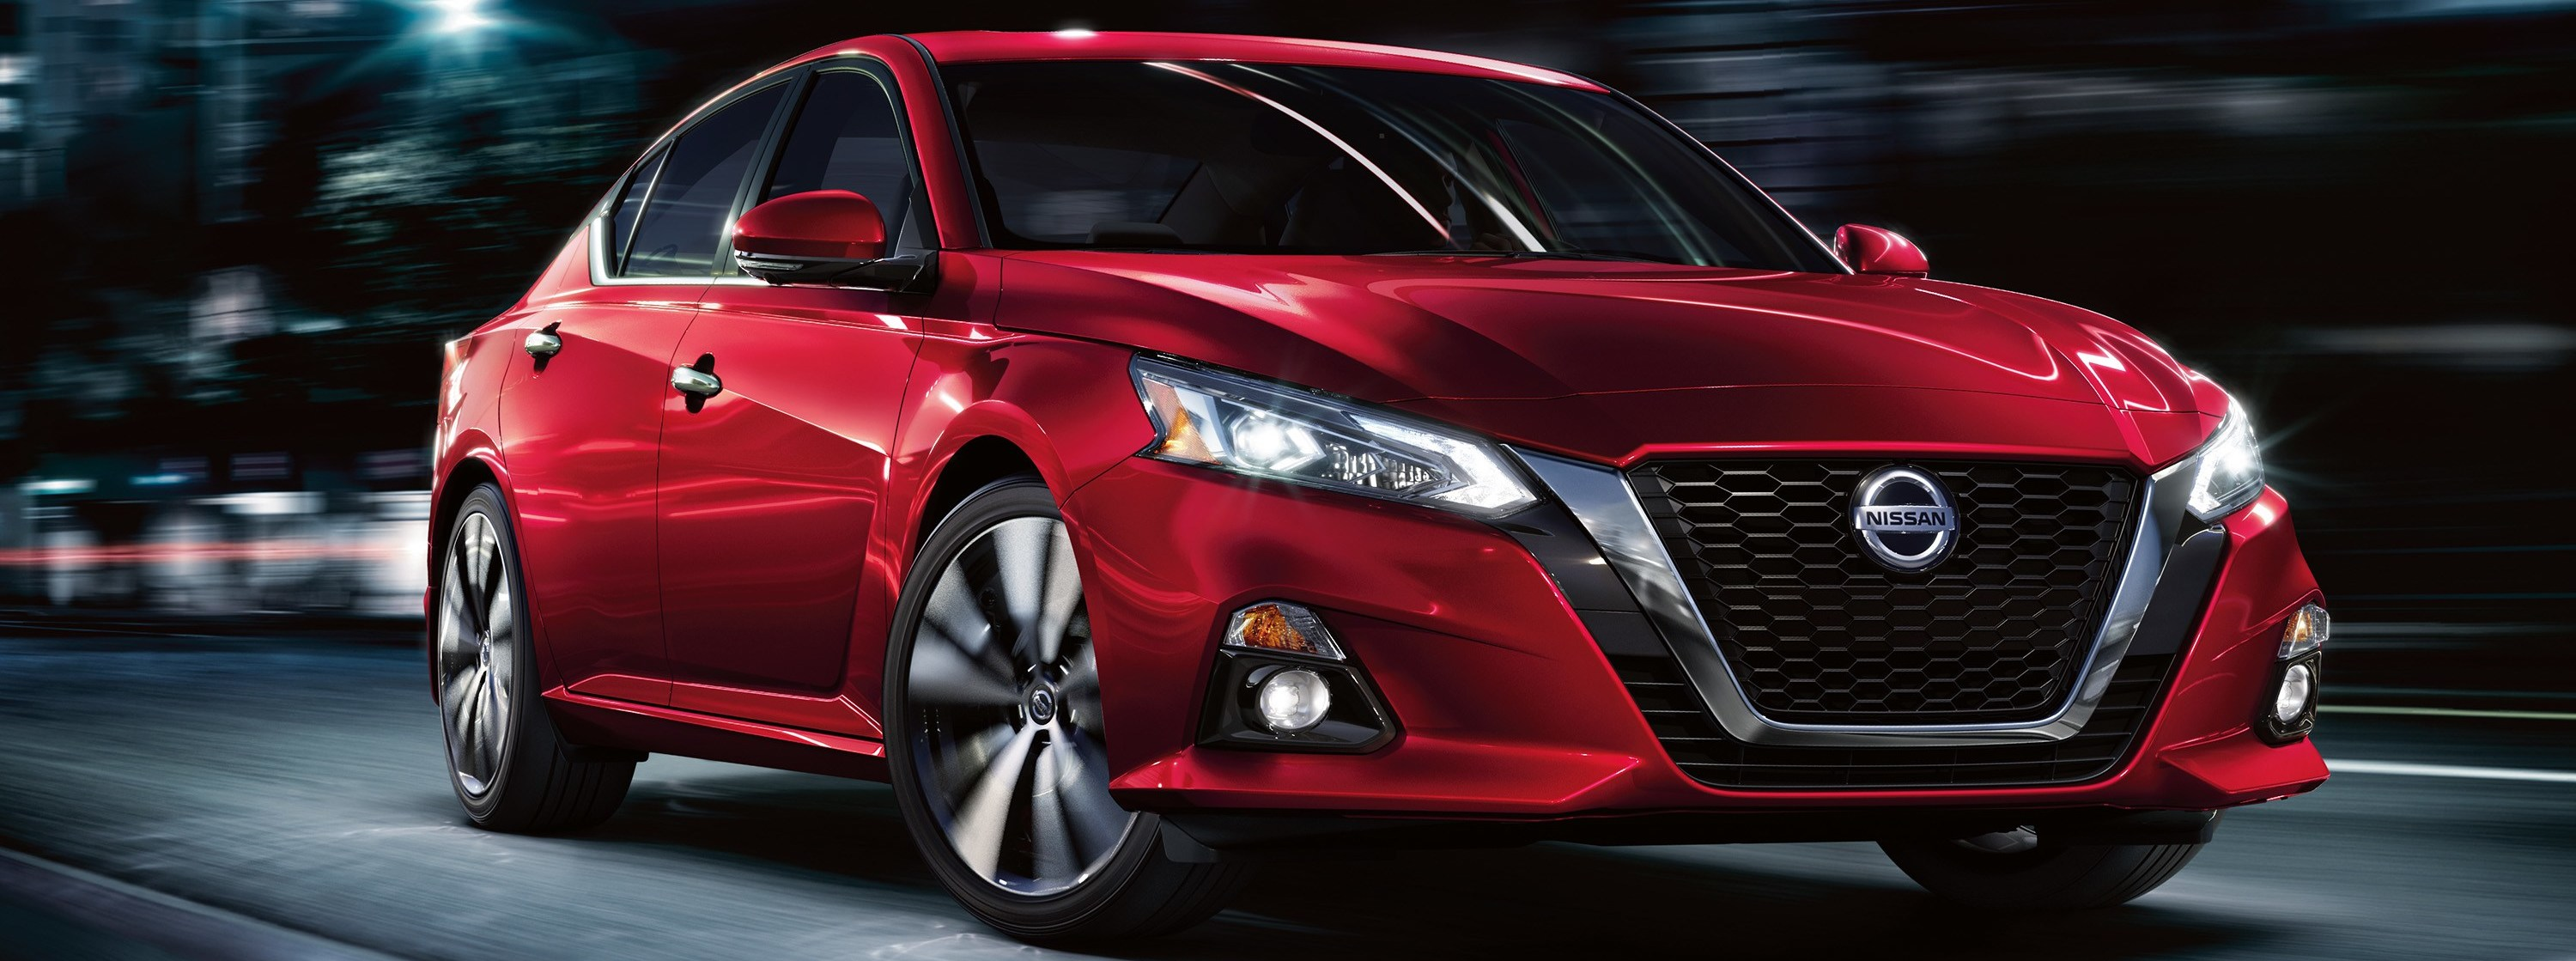 Test Drive a Nissan Today!